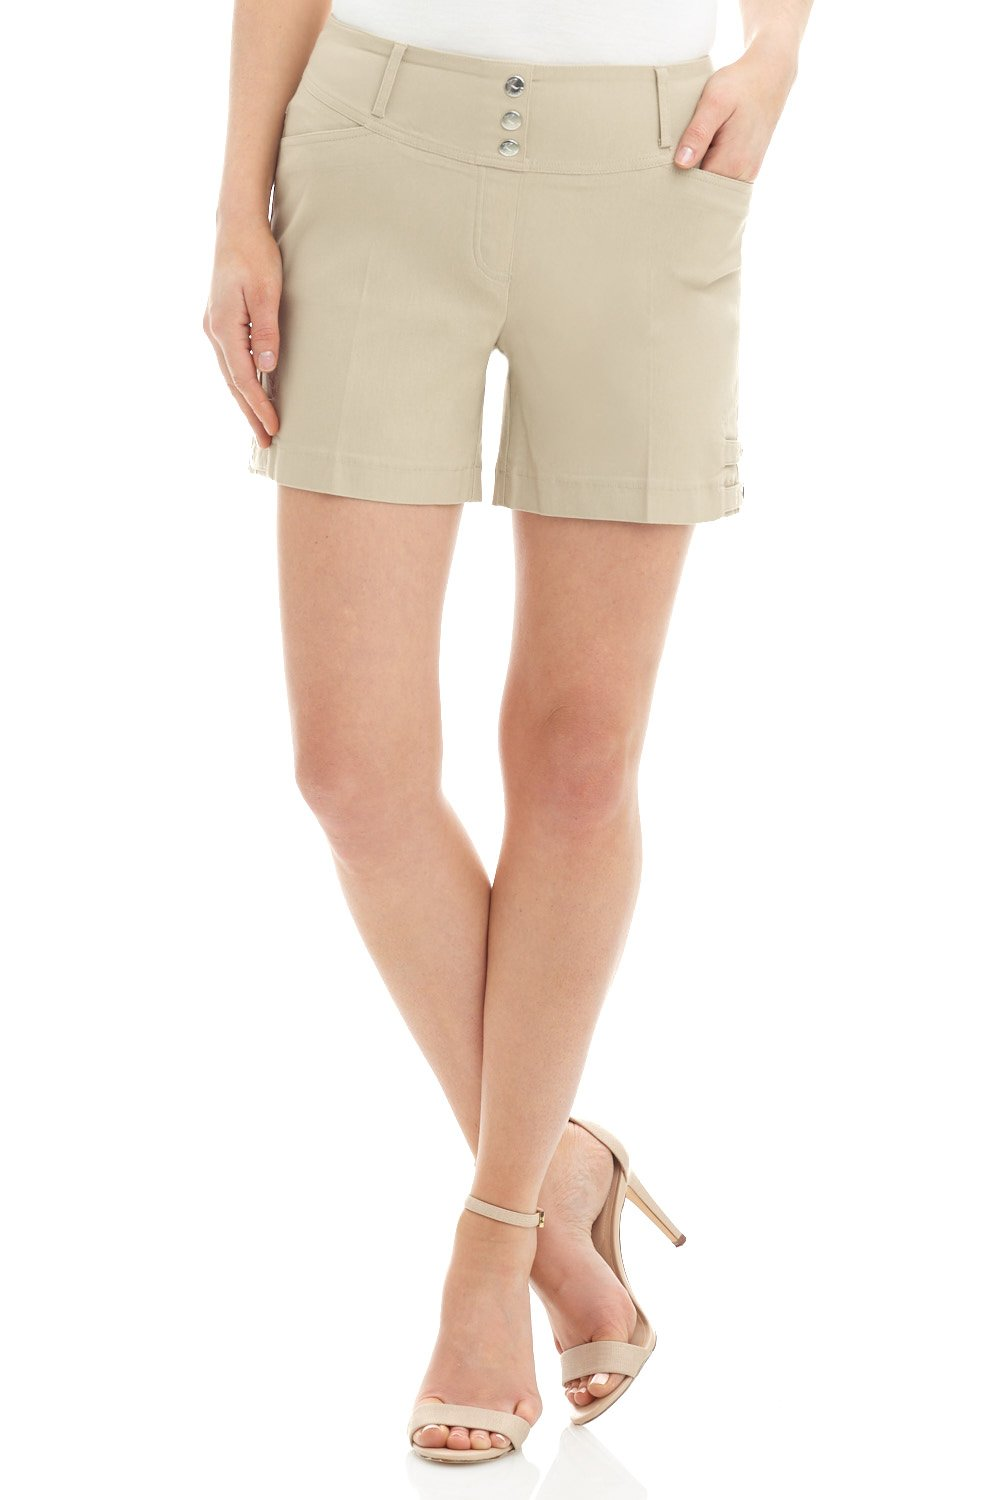 Rekucci Women's Ease Into Comfort Stretchable Pull-On 5'' Slimming Tab Short (12,Stone)